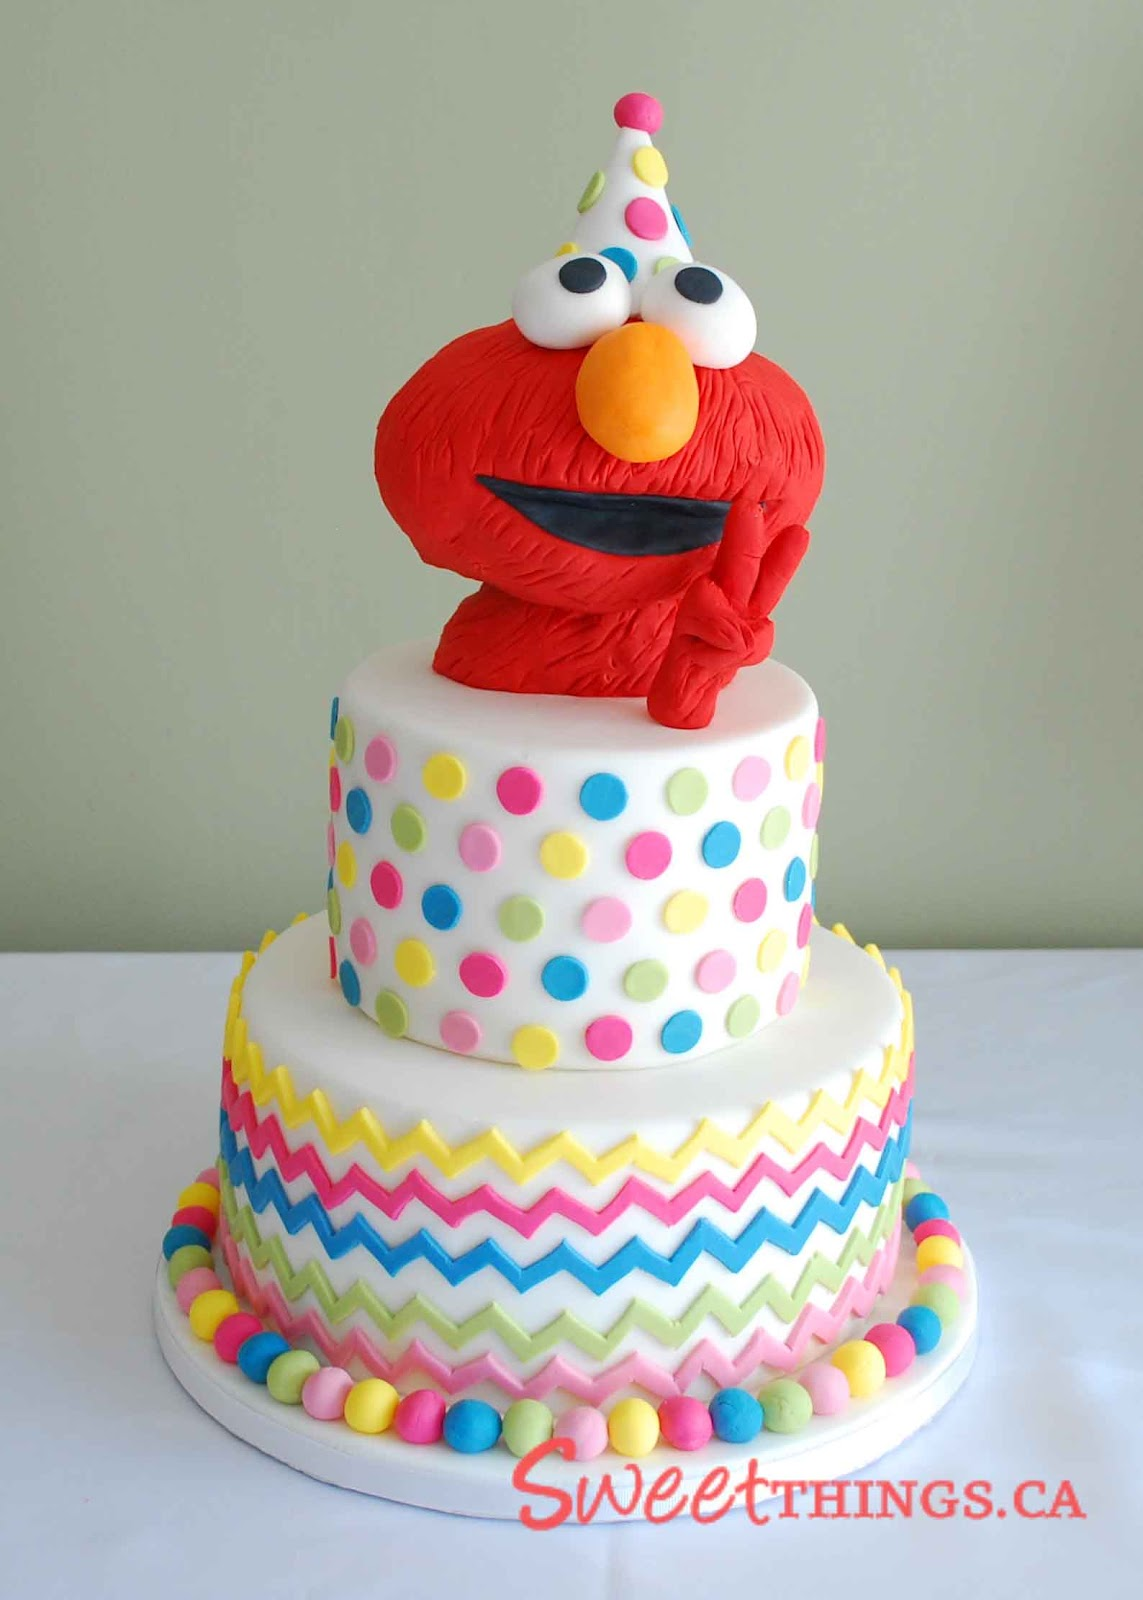 Elmo Design Birthday Cake : SweetThings: 2nd Birthday Cake: Elmo Cake